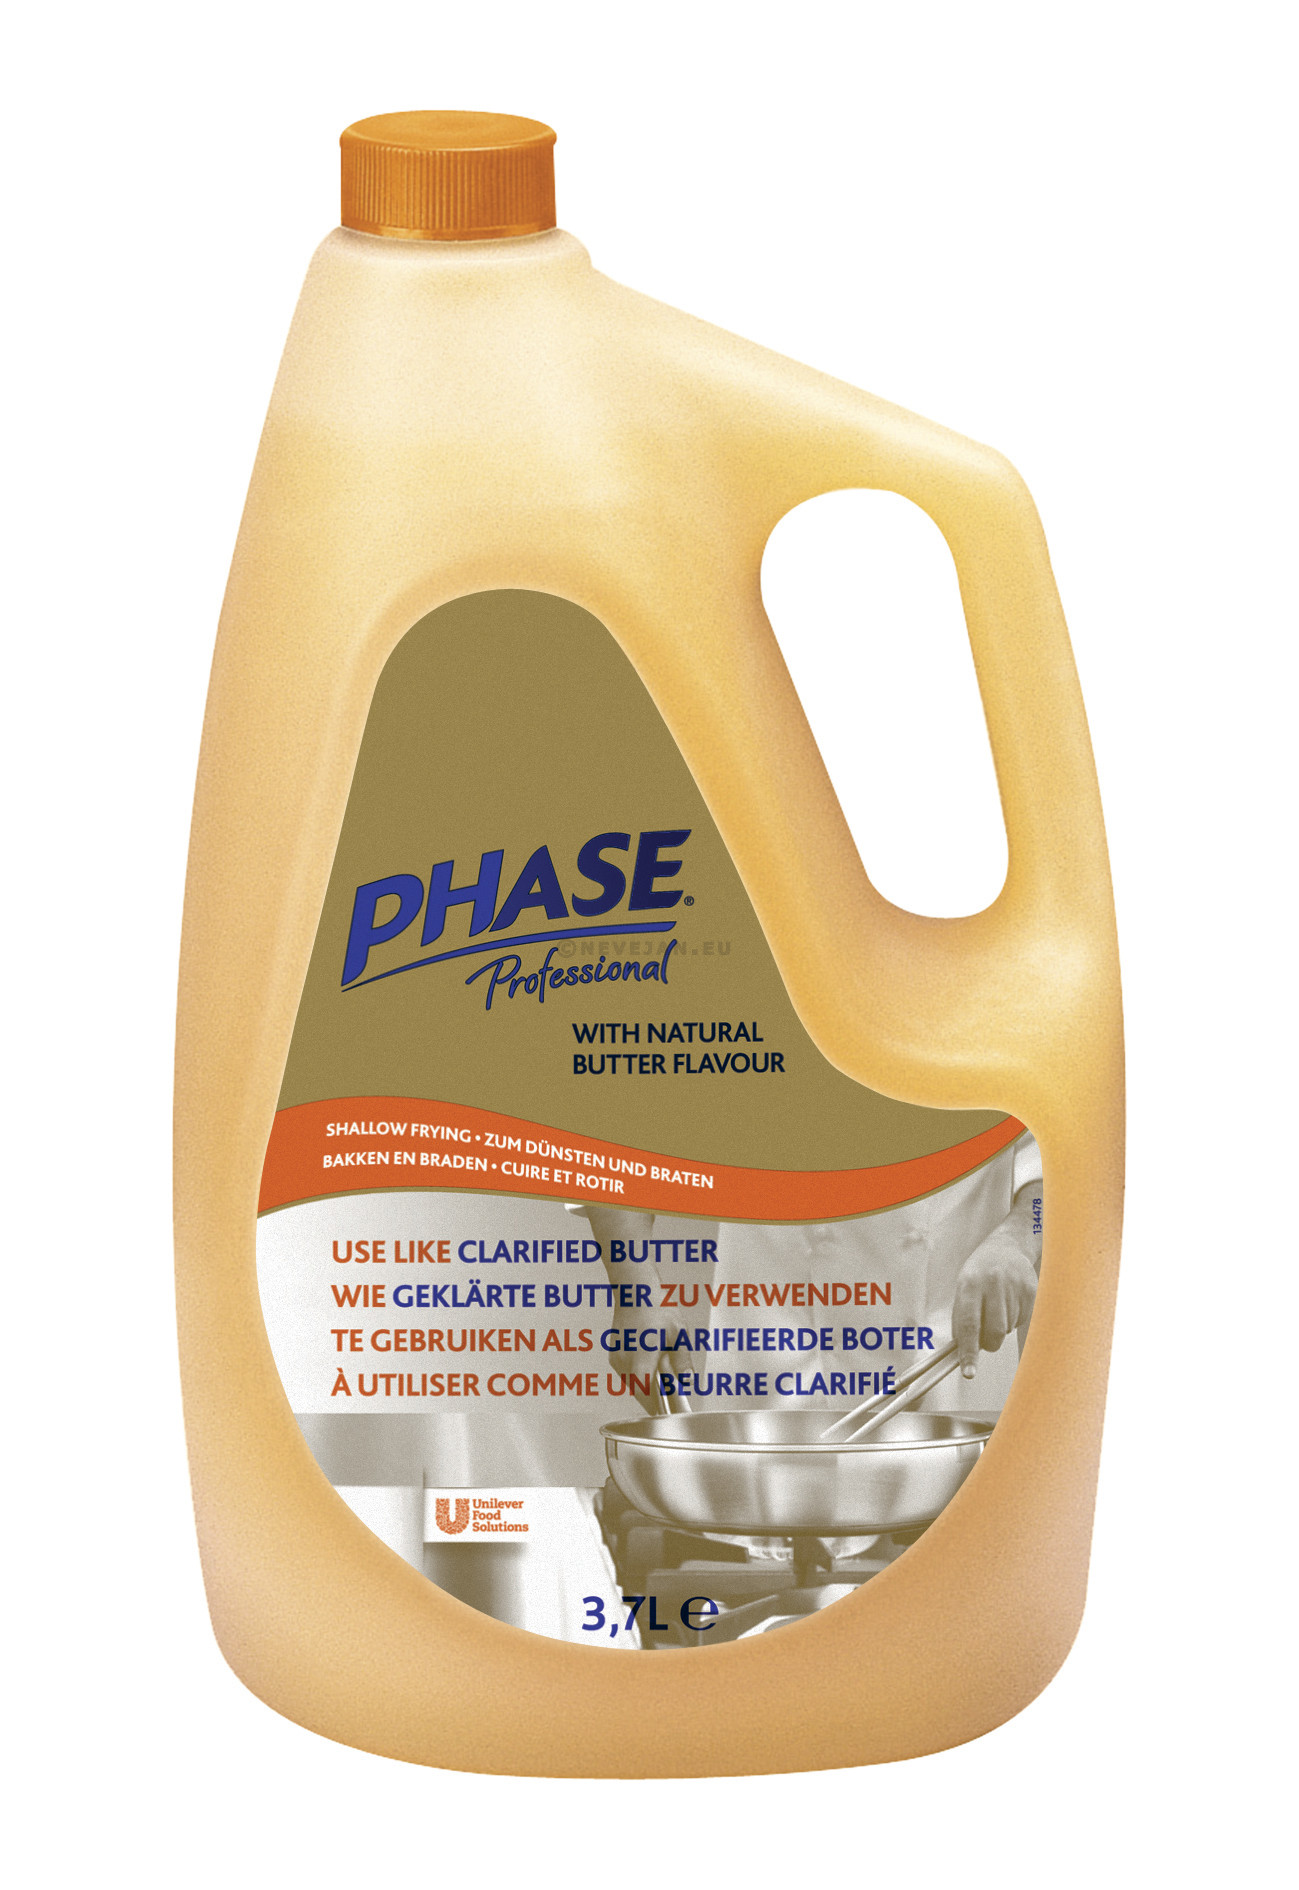 Phase Butter Flavour 3.7L